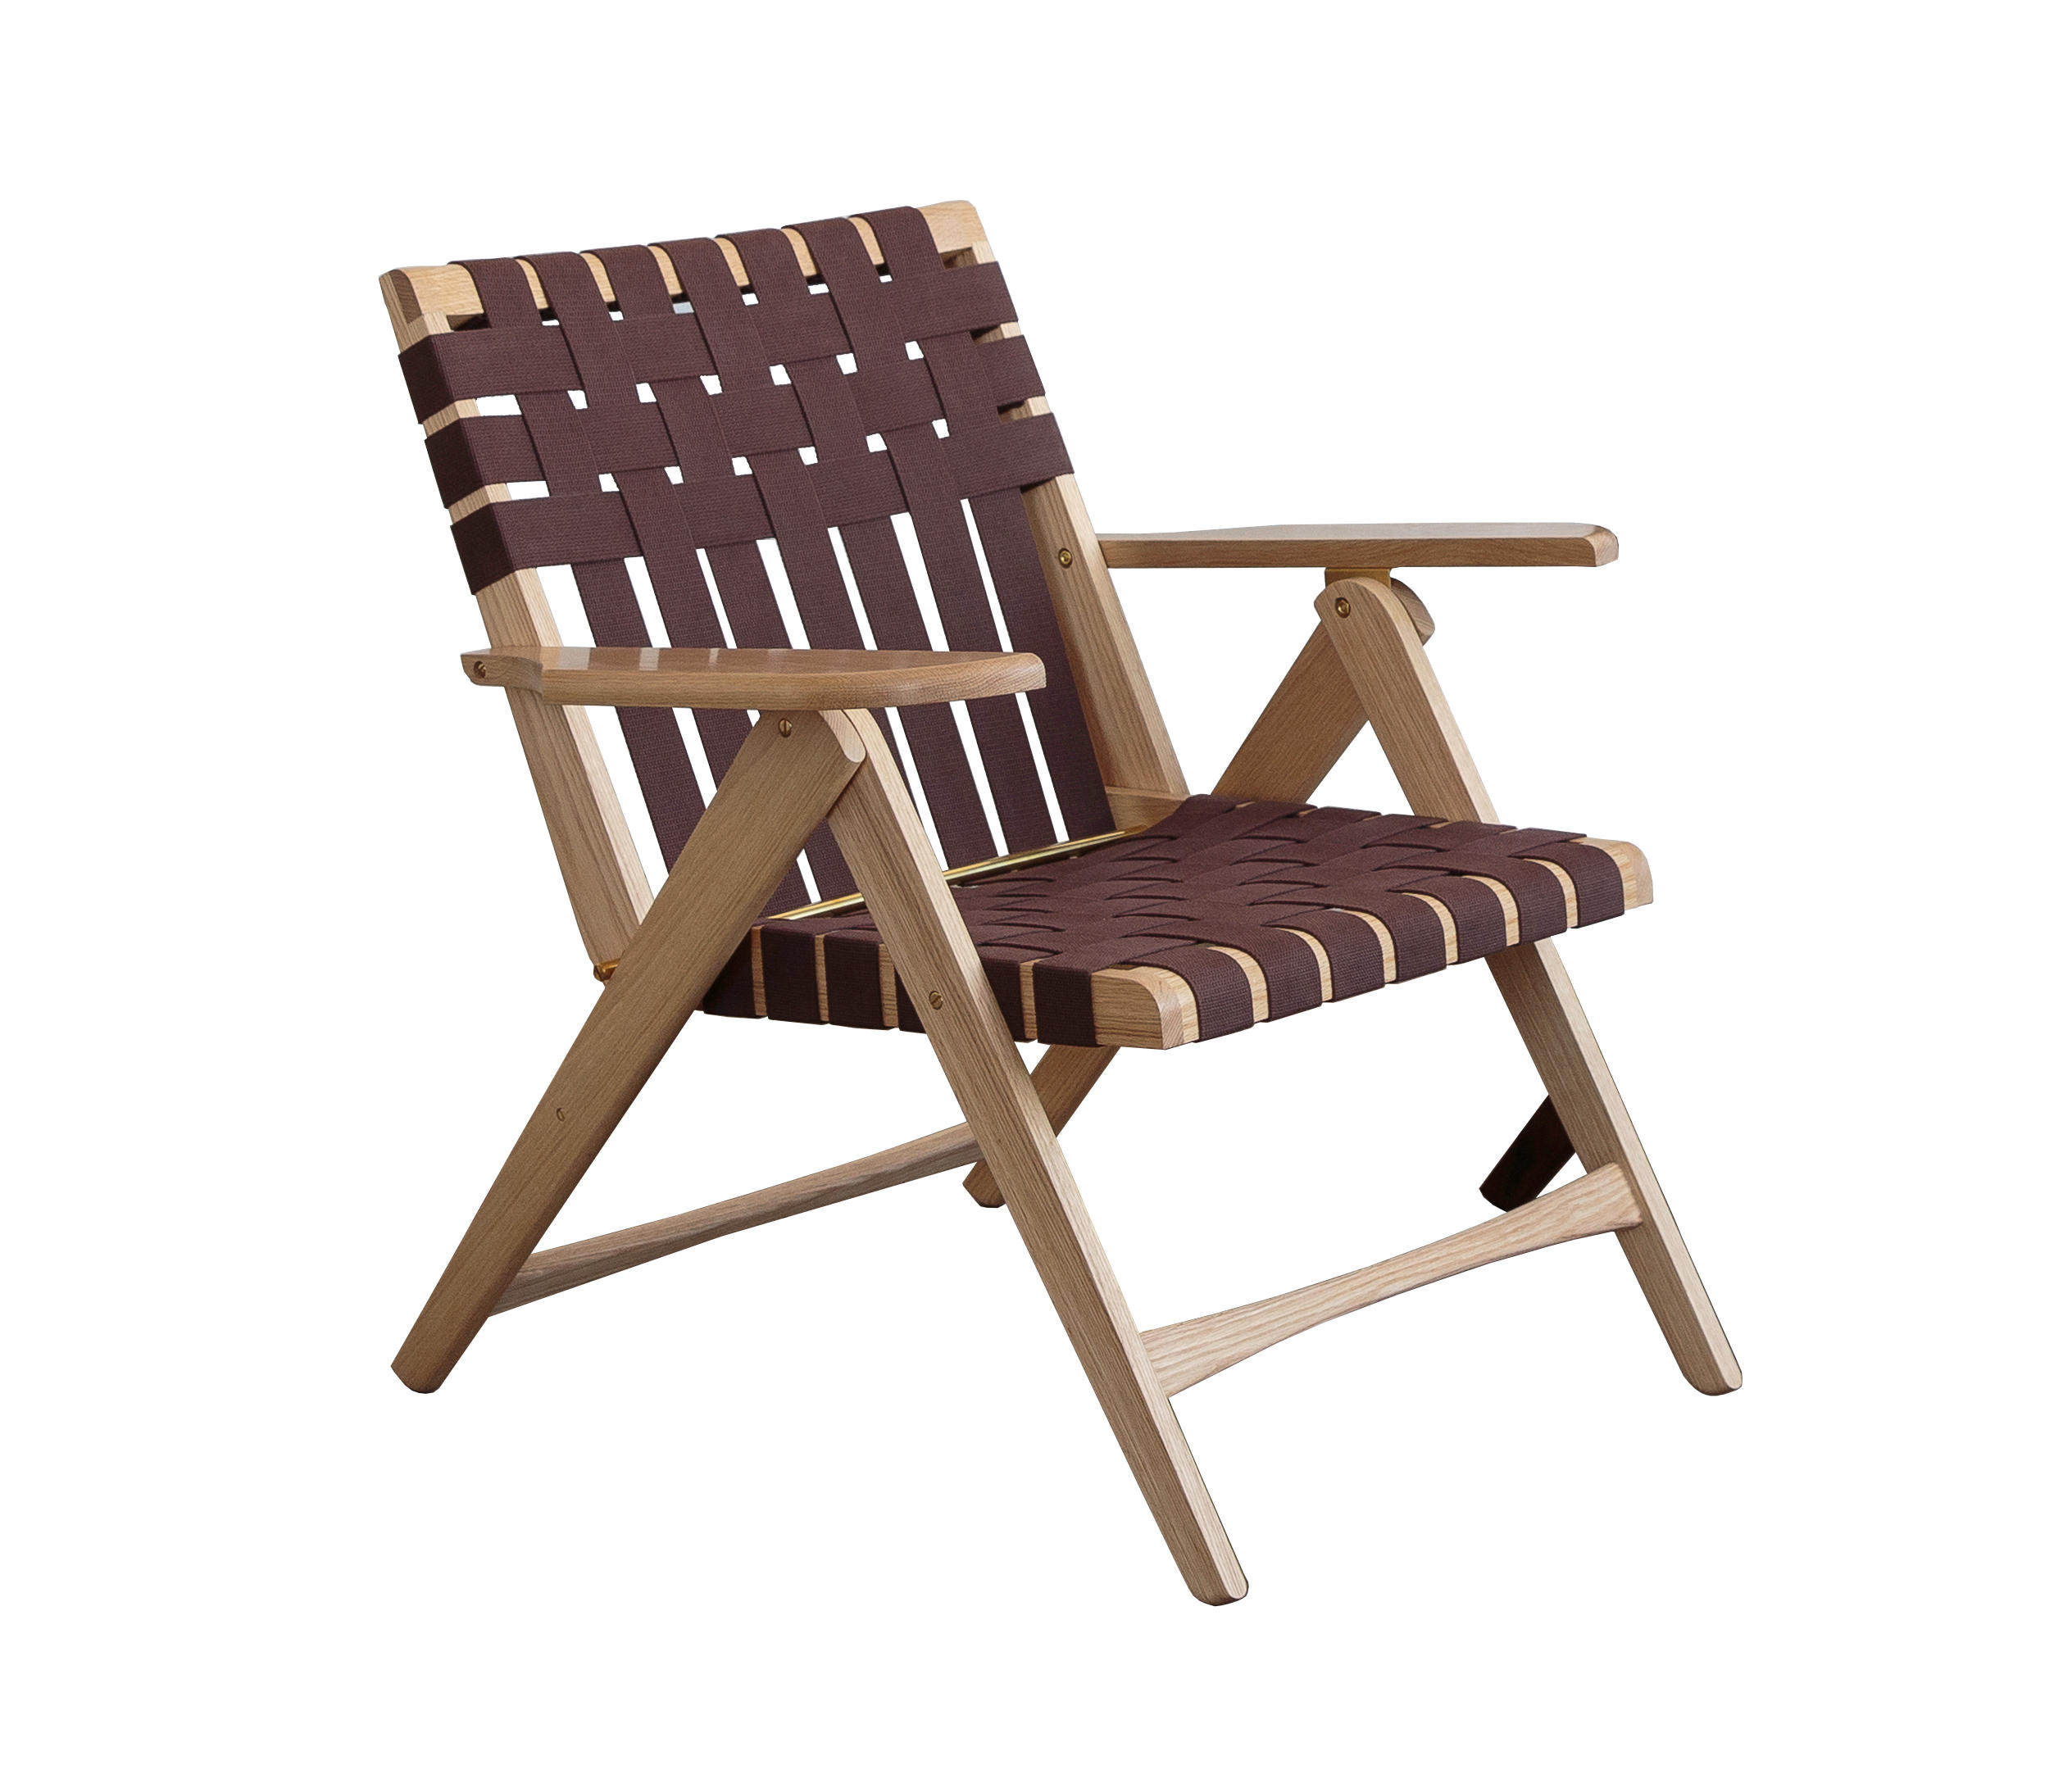 Folding Lounge Chair Oak by Todd St. John | Armchairs  sc 1 st  Architonic & FOLDING LOUNGE CHAIR OAK - Armchairs from Todd St. John | Architonic